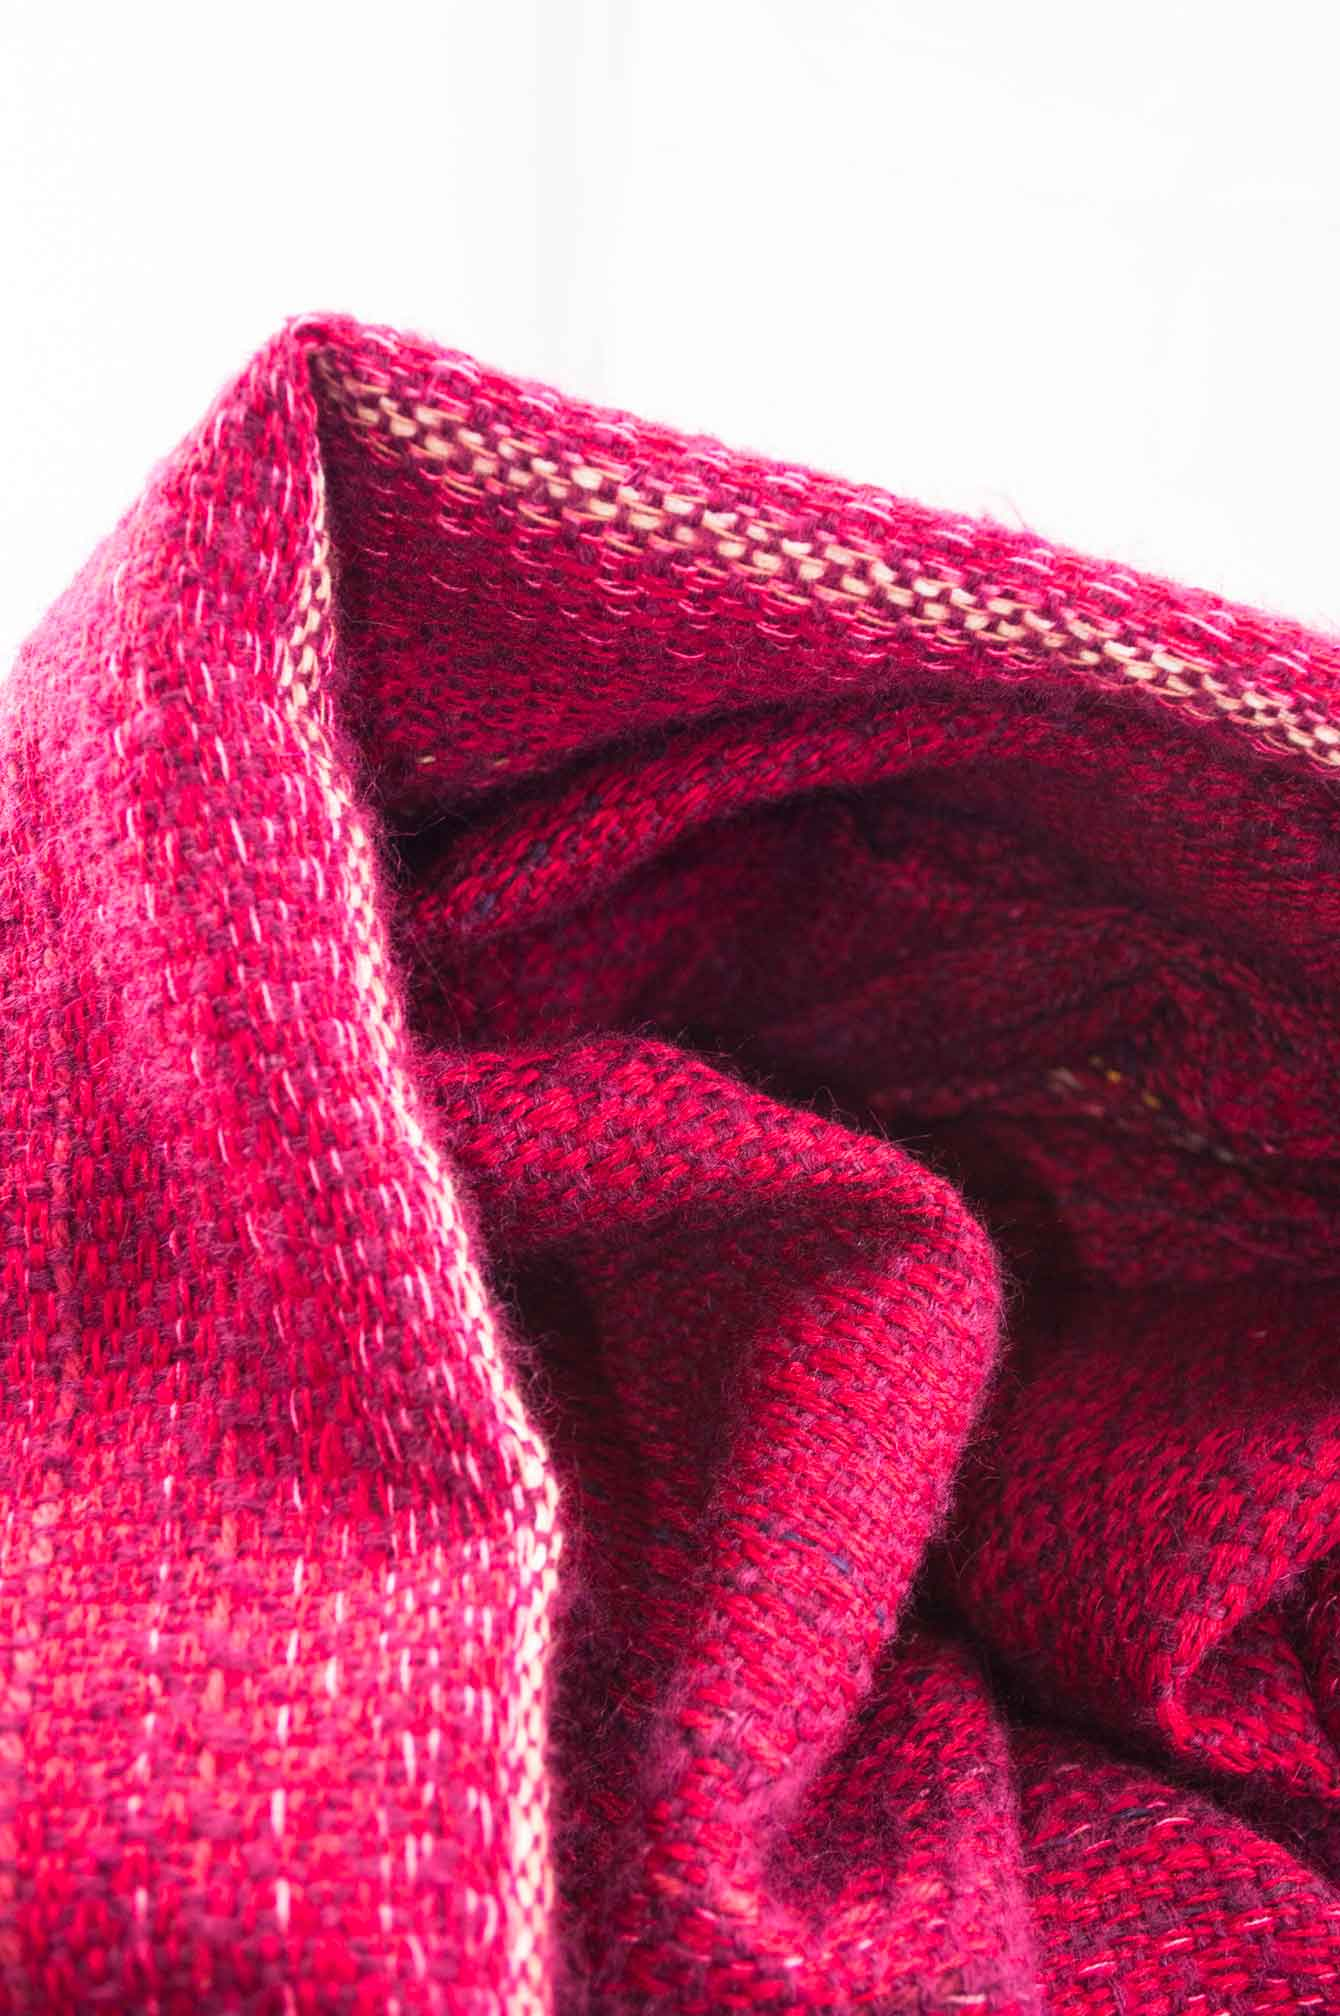 Throw blanket created with violet mohair, cashmere, wool, cotton, and linen.   Technique: Throw blanket hand-woven in a traditional way on non-mechanical looms in the 7th arrondissement of Paris in France.  Finishes: Right edge. Double stitching. 2 edges with 9 cm wool fringes.  Size: 150 x 235 cm.  Single piece / 1 copy only.